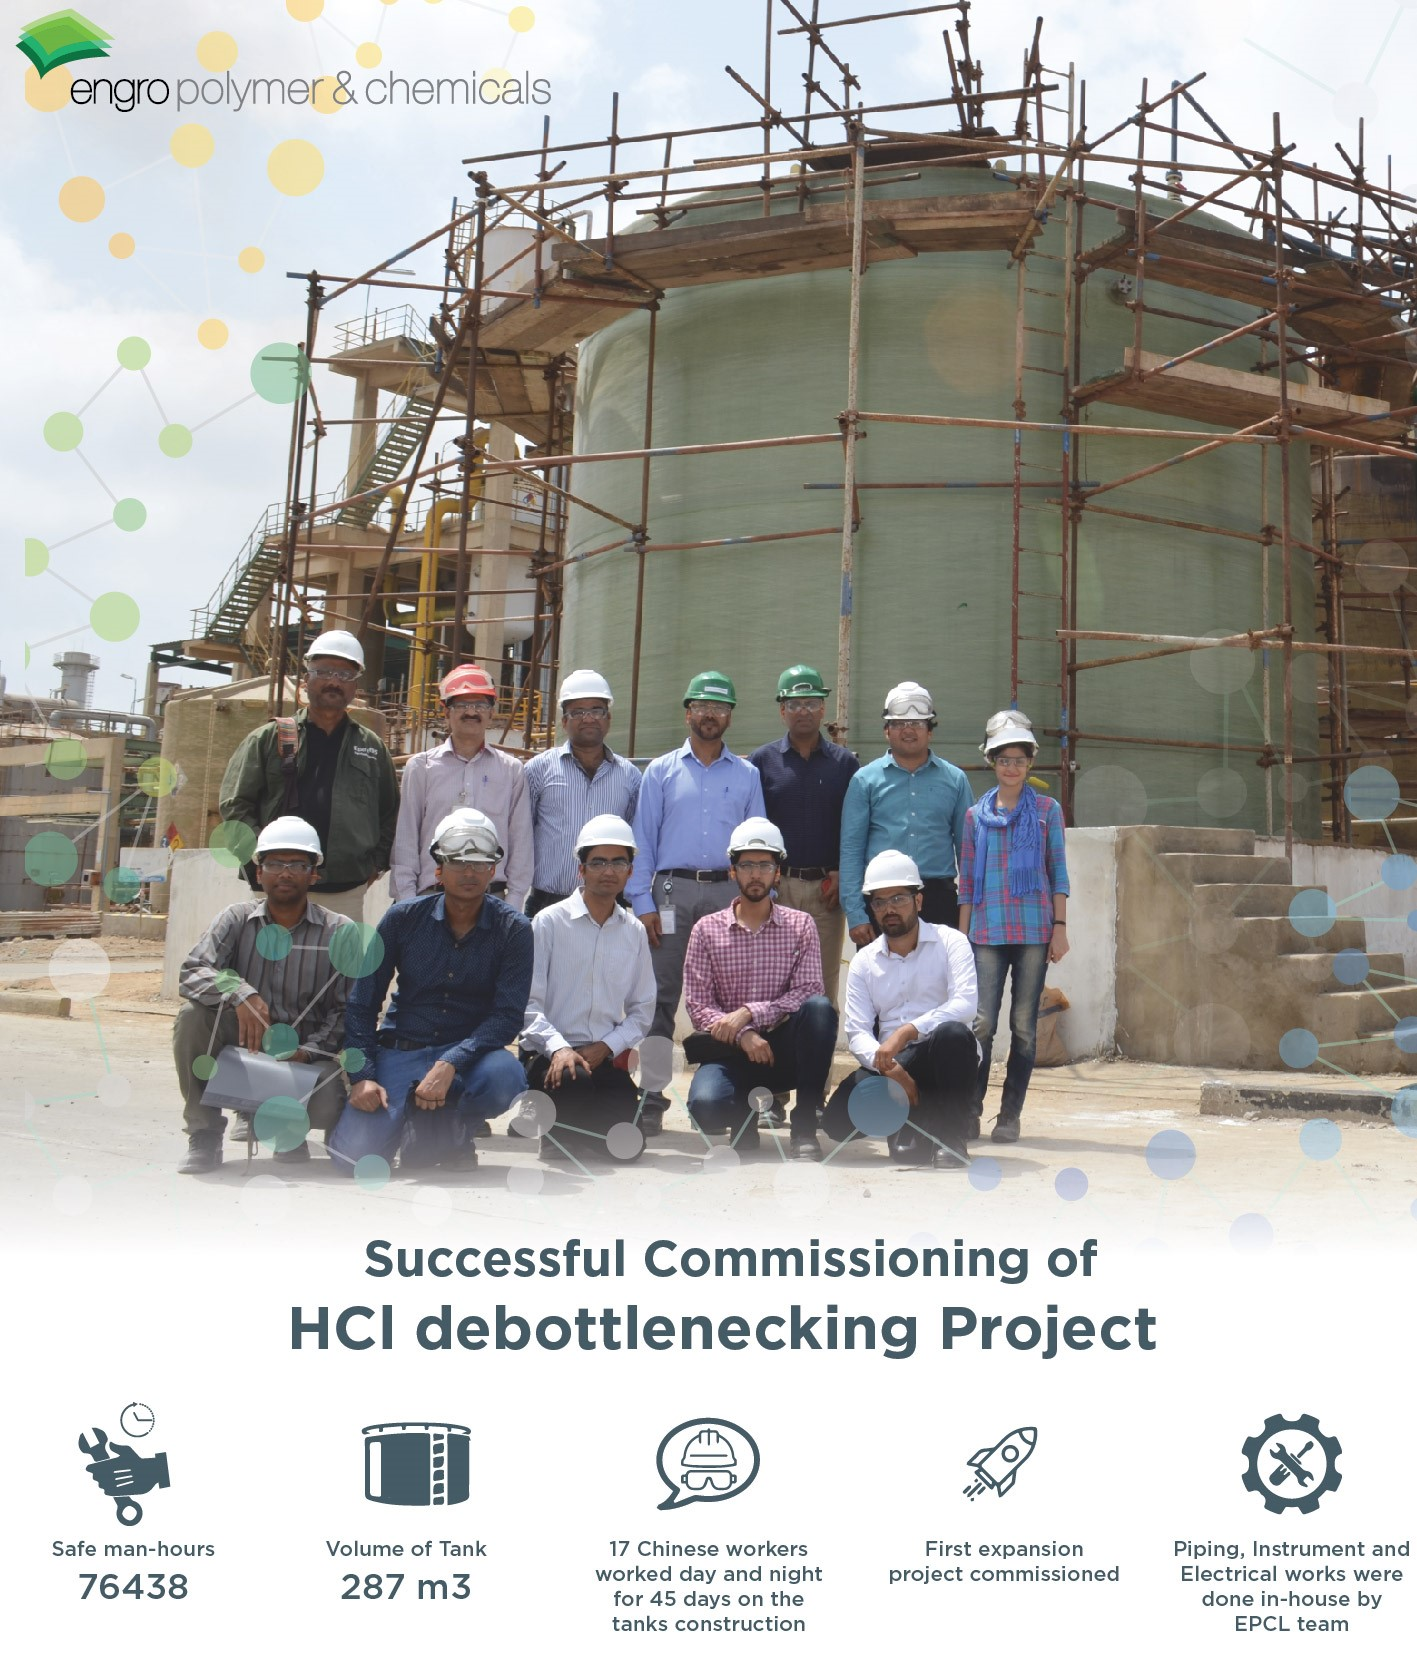 Successful Commissioning of hydrochloric acid debottlenecking Project